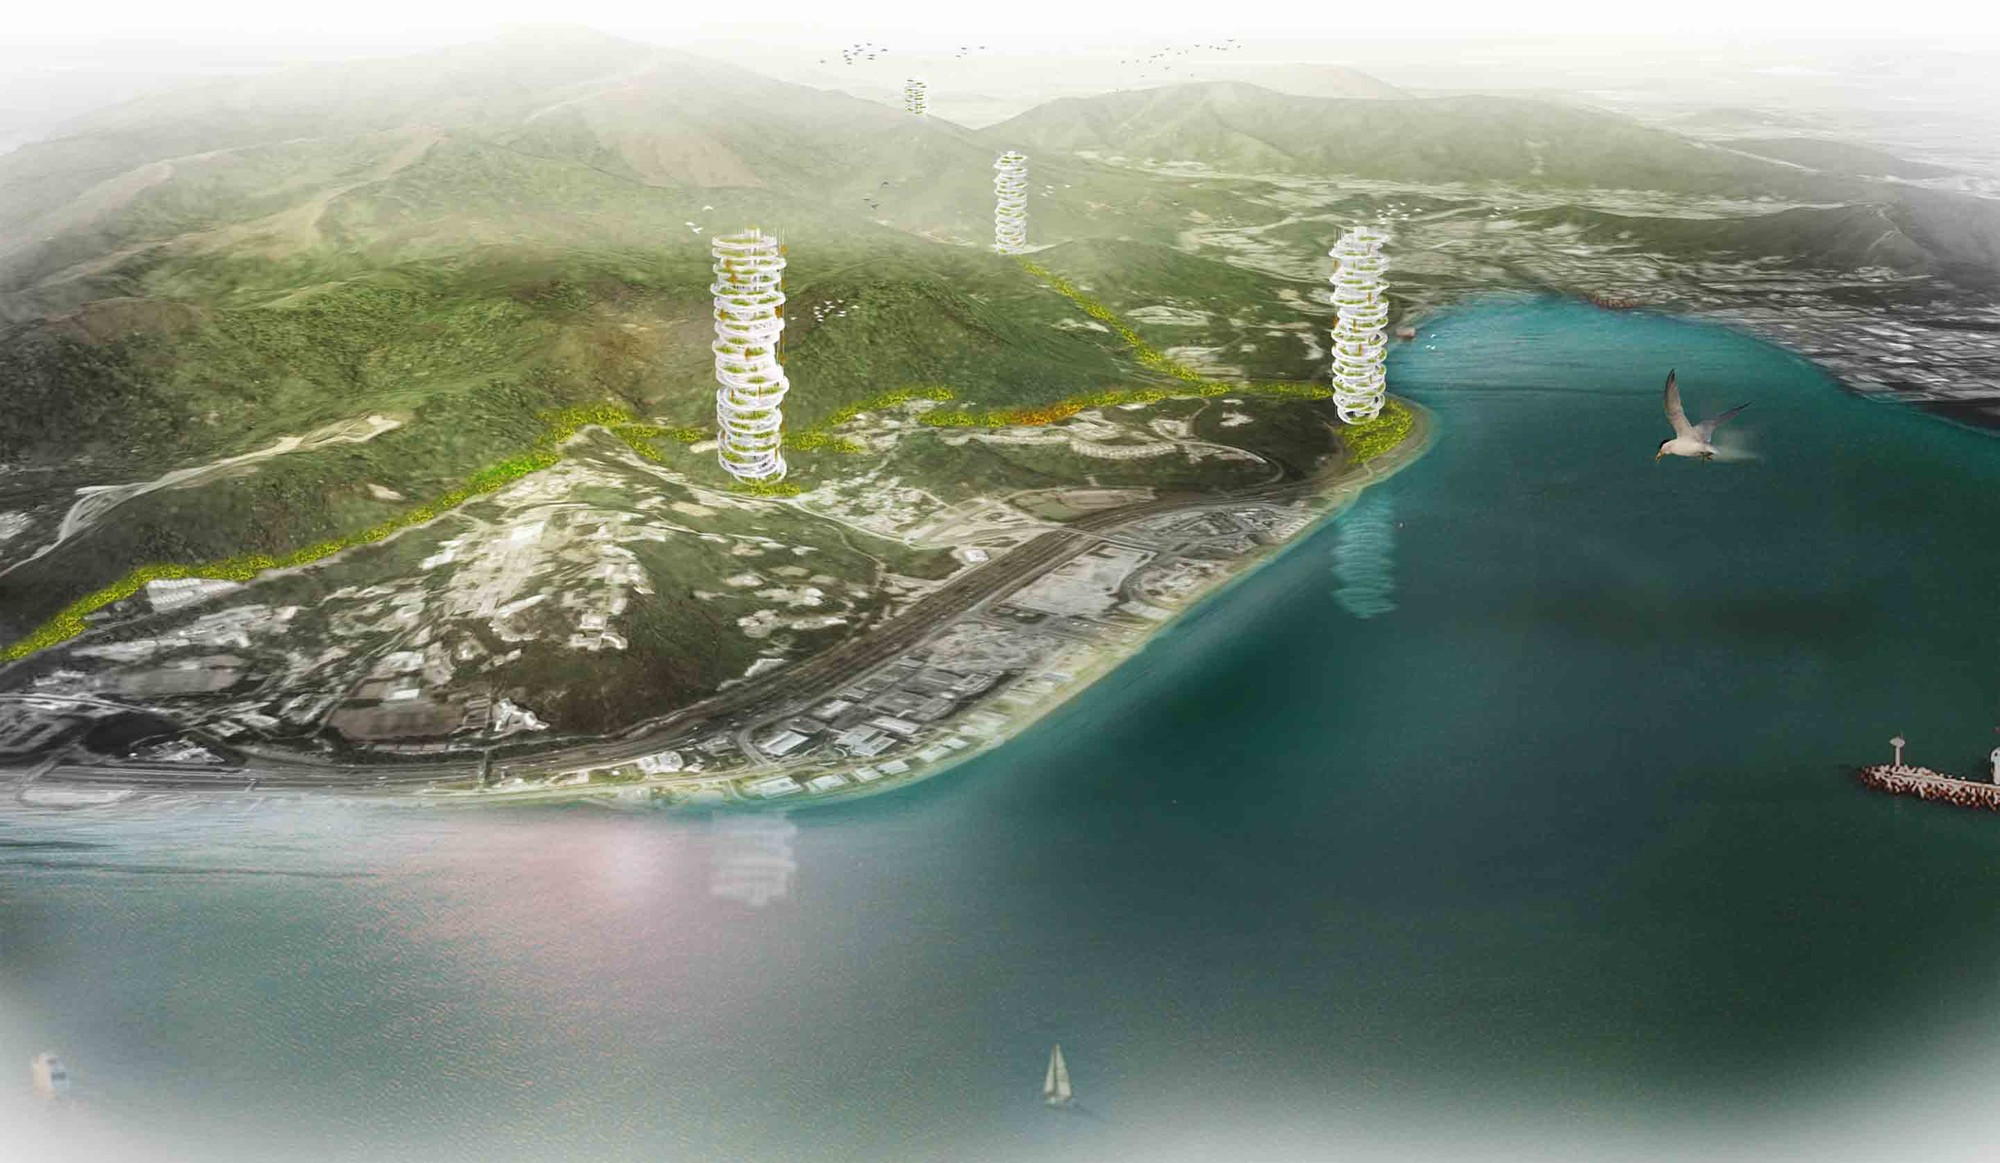 Dyv-net, Dynamic Vertical Networks Proposal / JAPA Architects, Courtesy of JAPA Architects